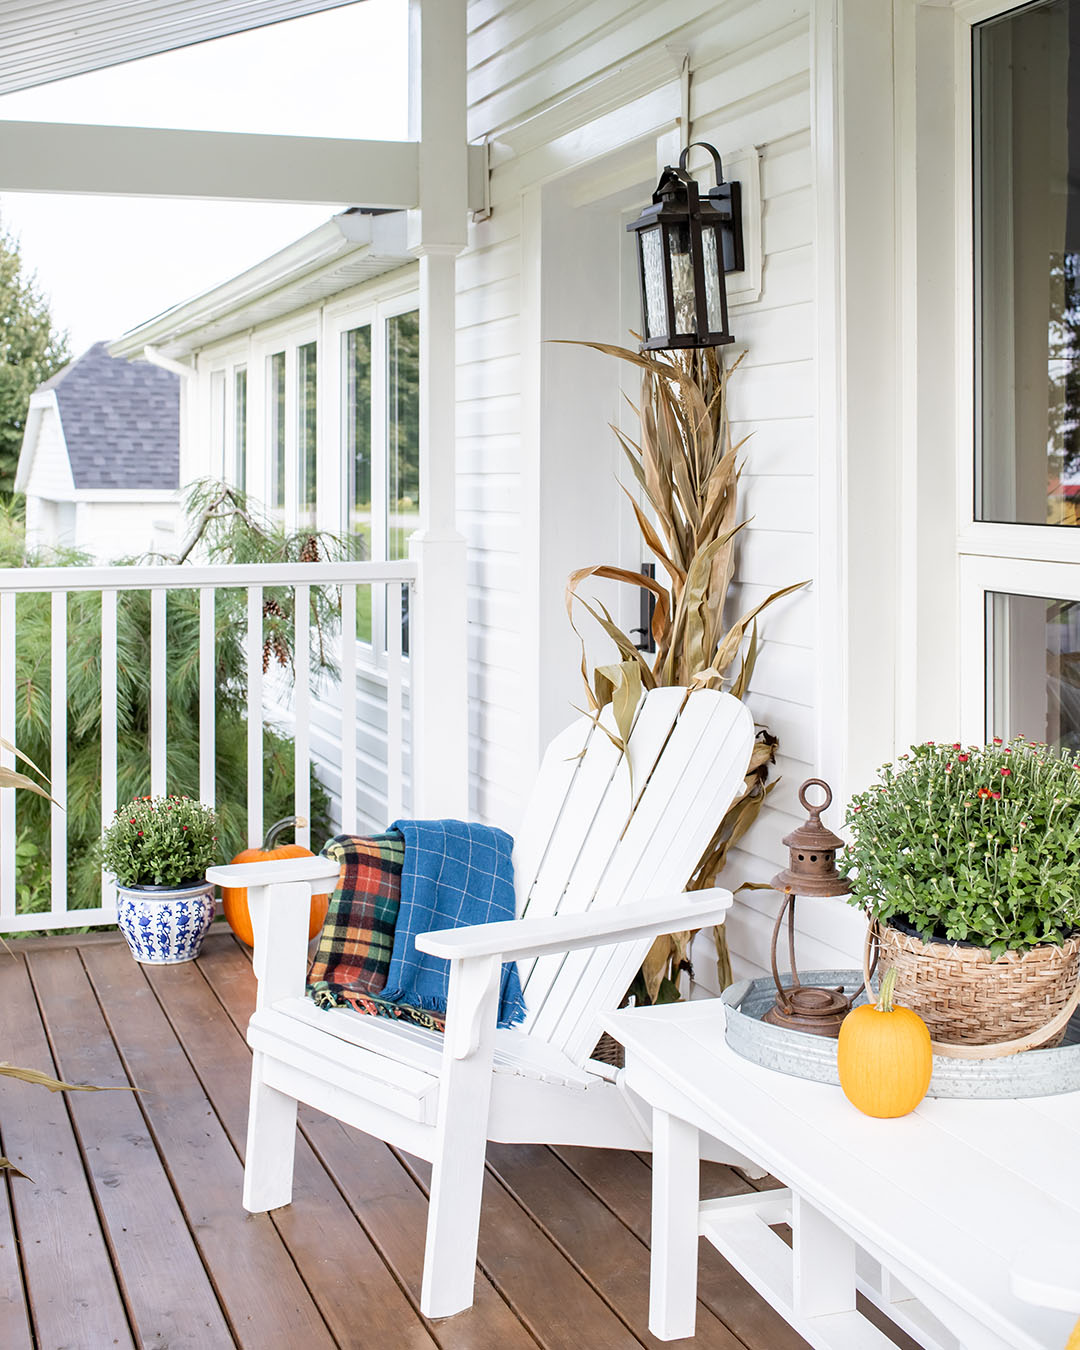 Fall weather is here! In today's post we'll share how we've decorated our classic farmhouse fall front porch this year with brightly coloured mums and cheerful orange pumpkins.